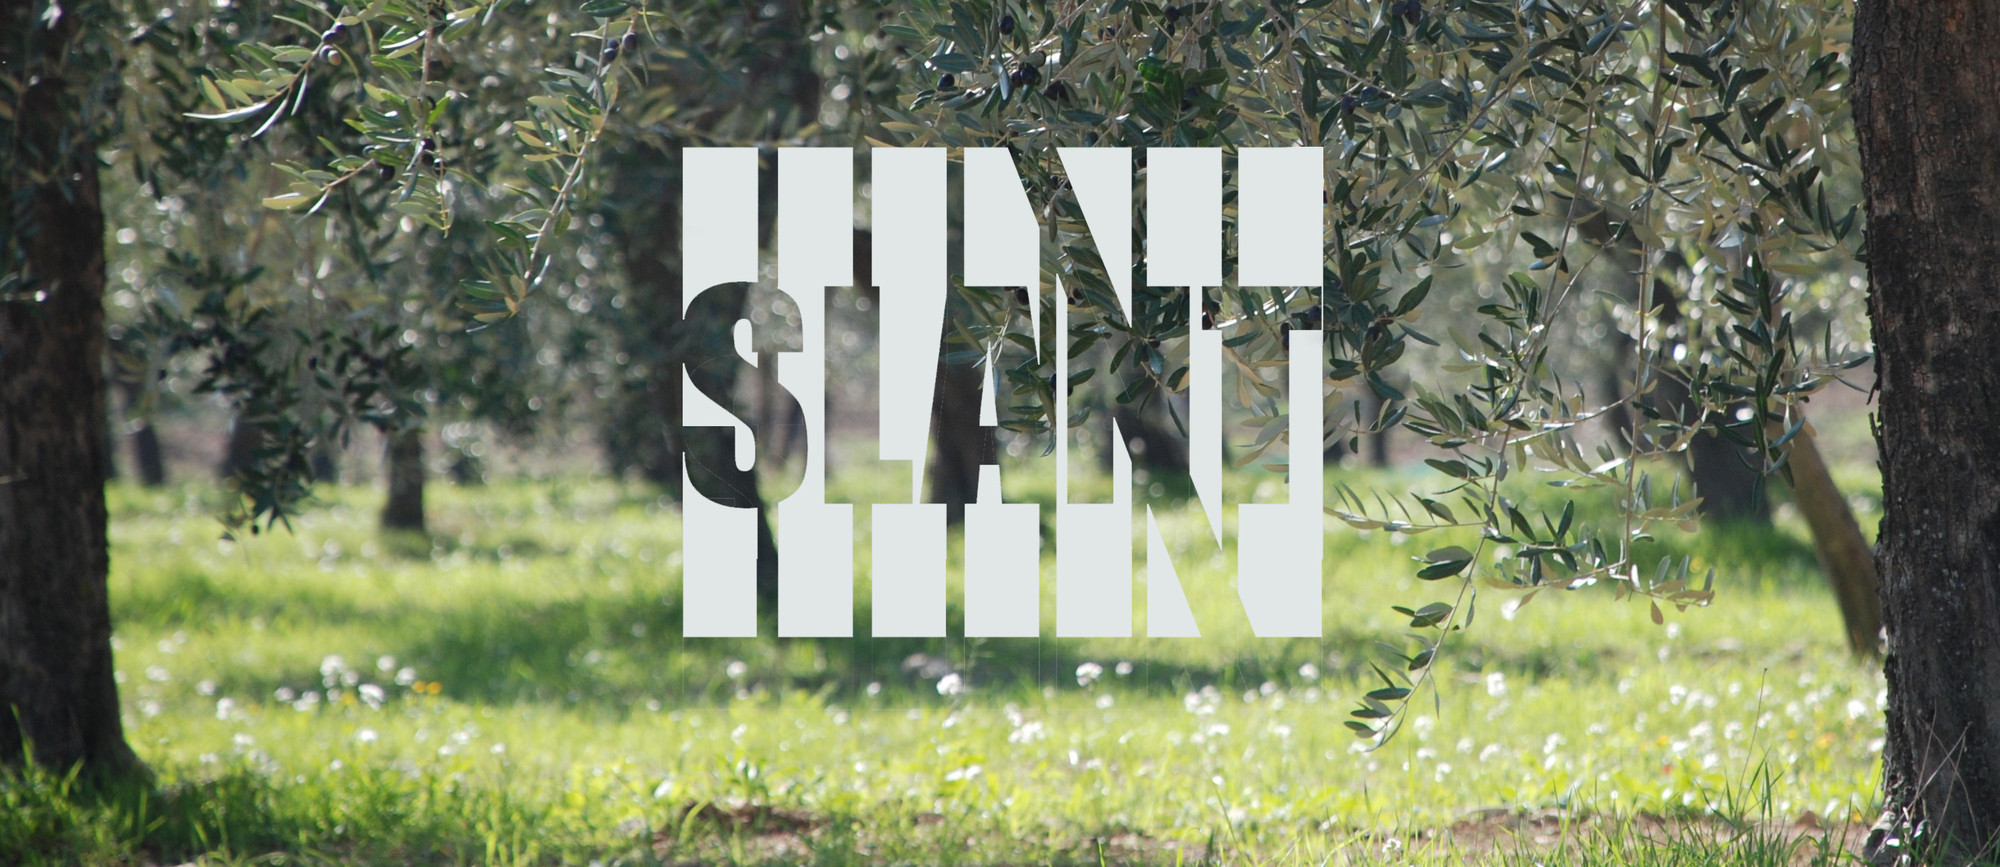 Slant Competition 2013: 'Evoking Memories', Courtesy of Slant Organization